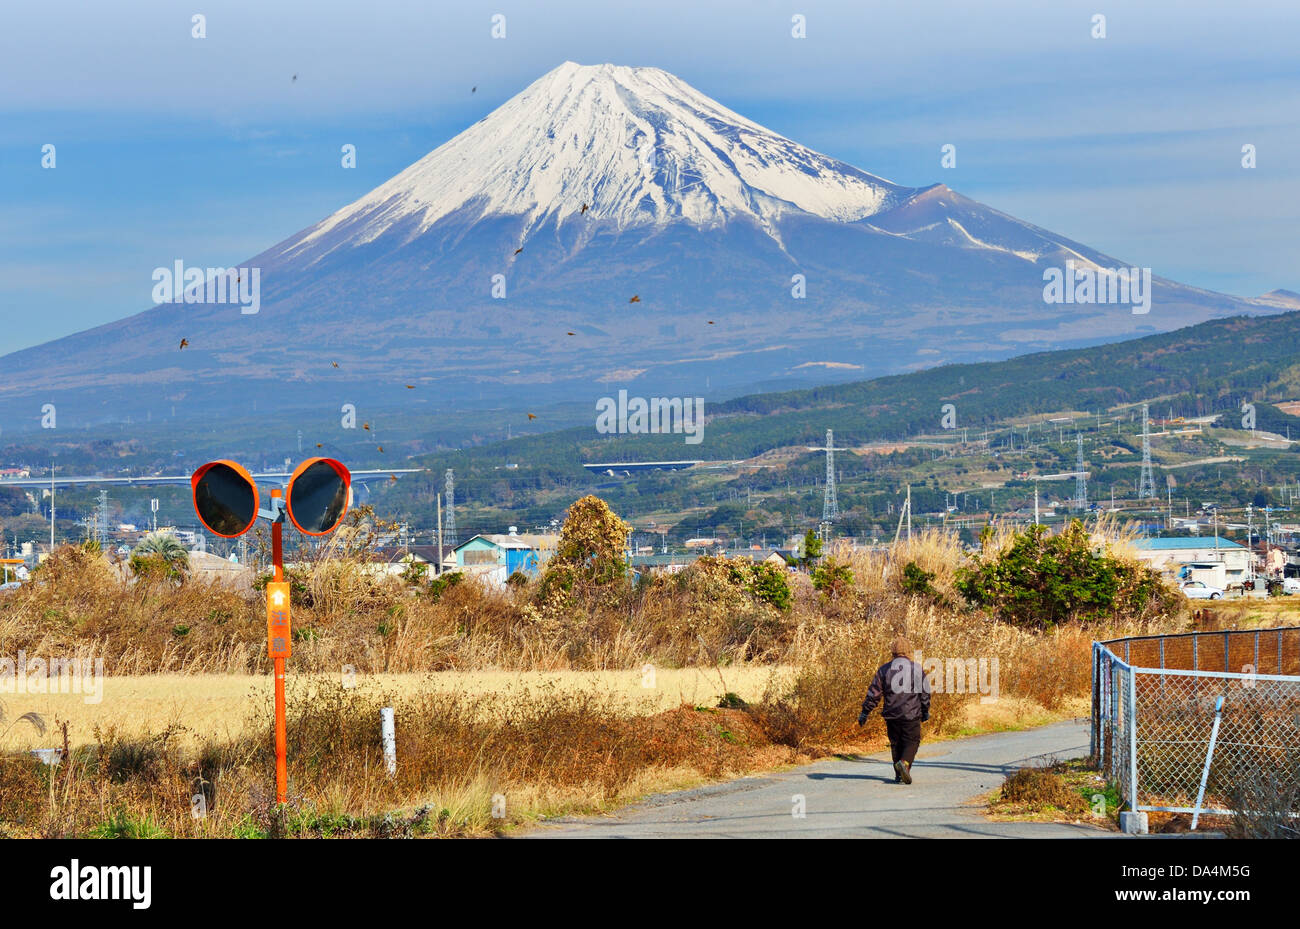 Farmland below Mt. Fuji in Japan. - Stock Image